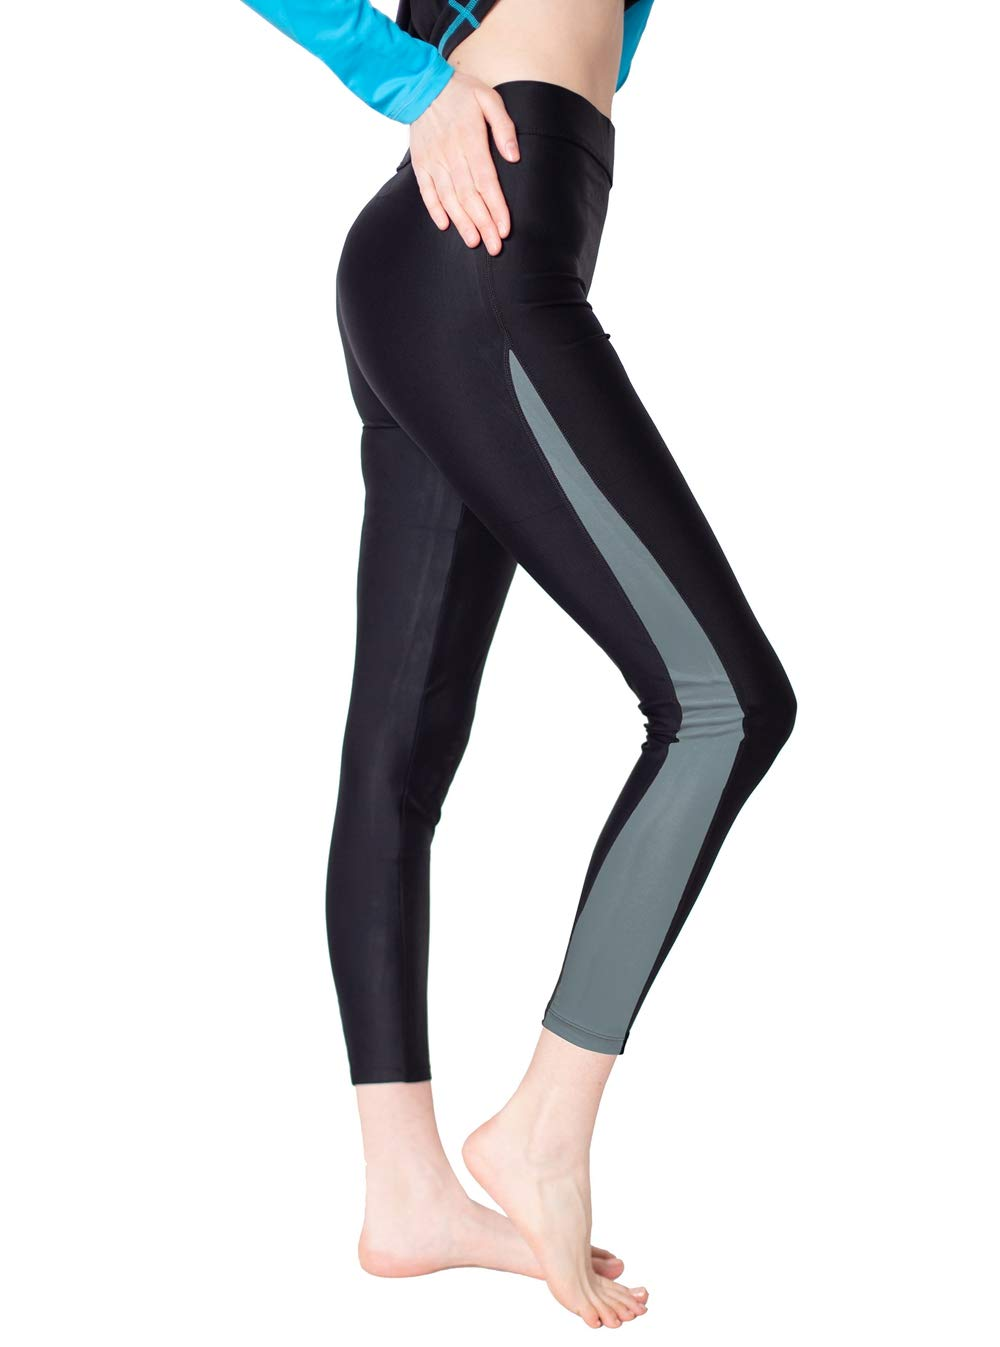 Women's Swim Capris Leggings Grey S by Scodi